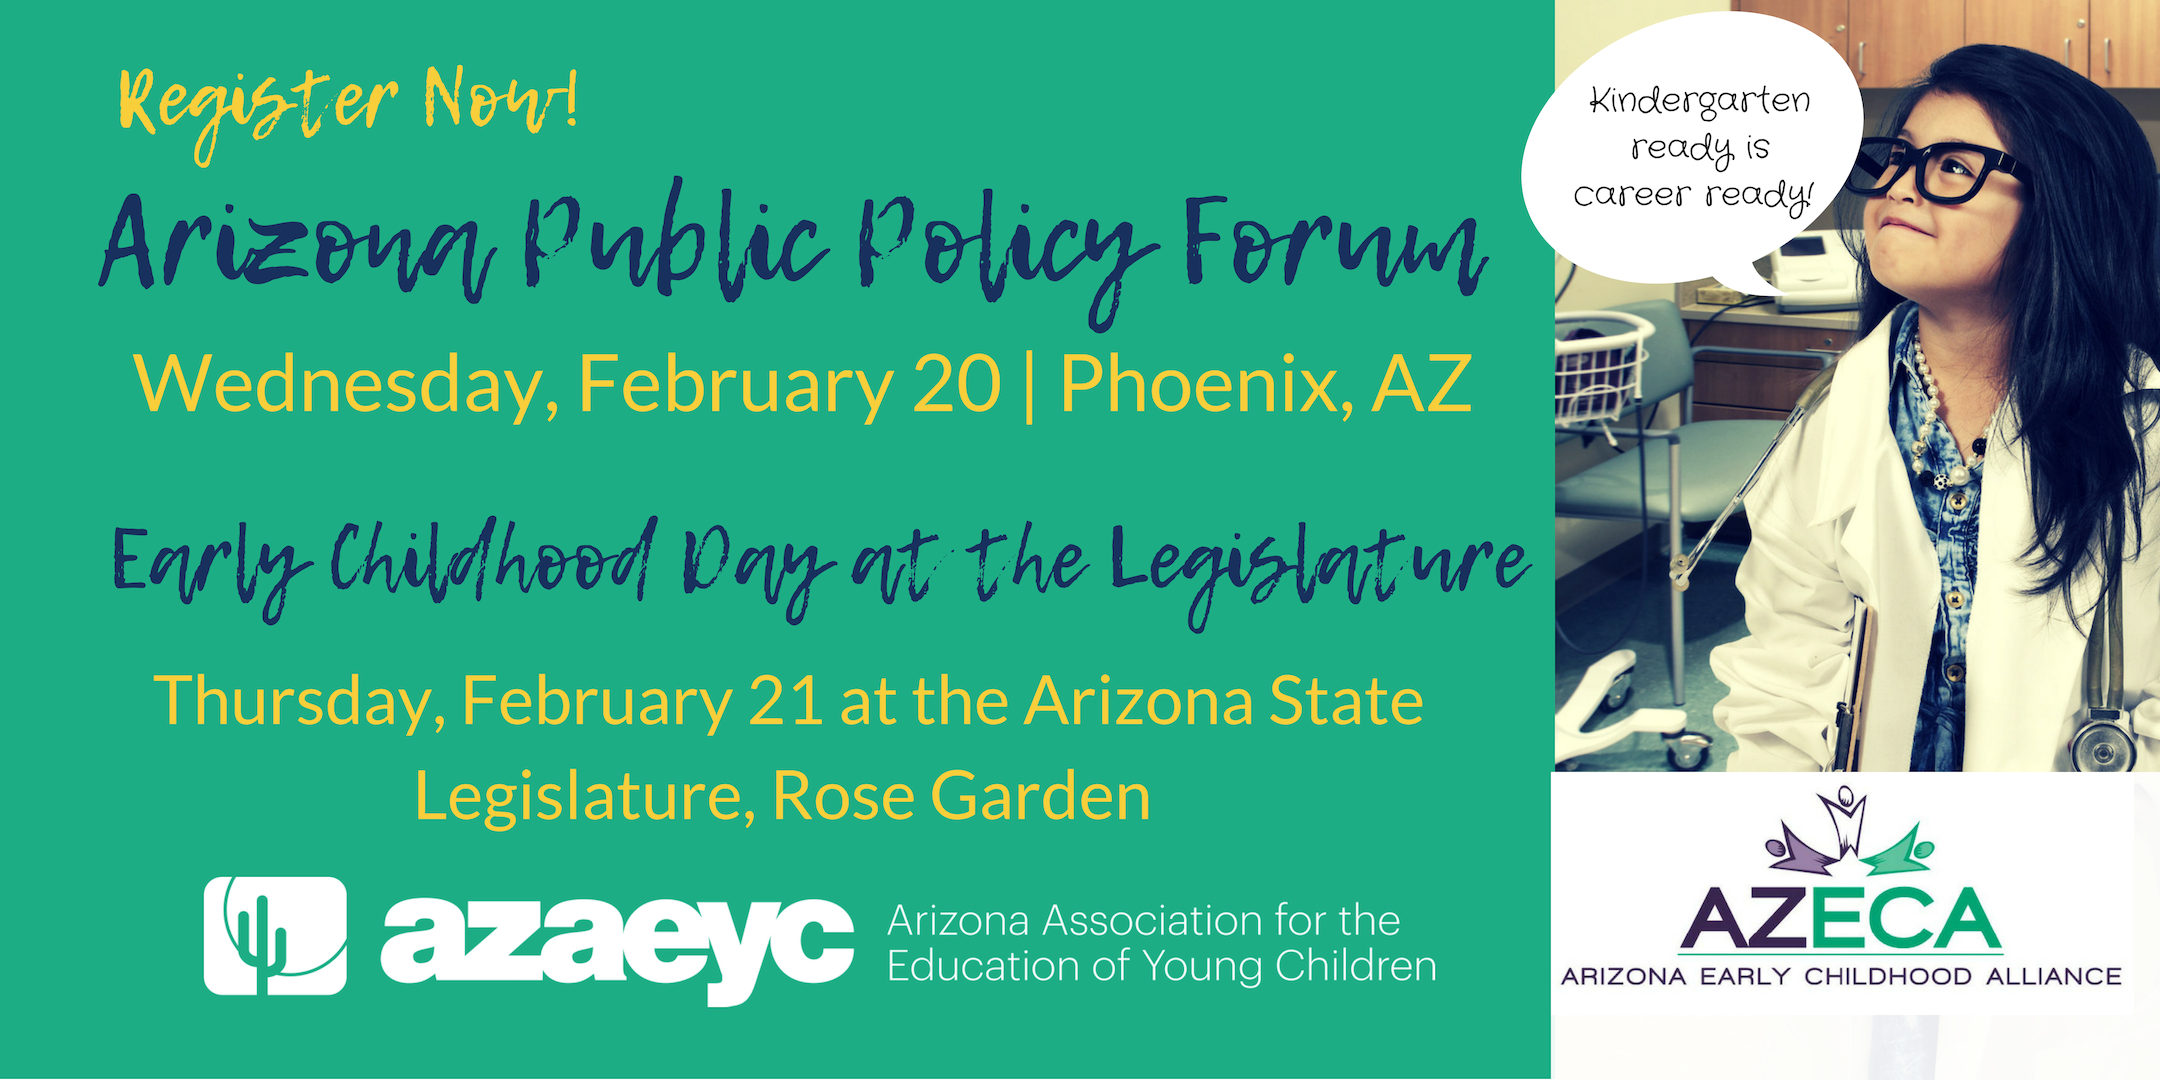 Arizona Public Policy Forum